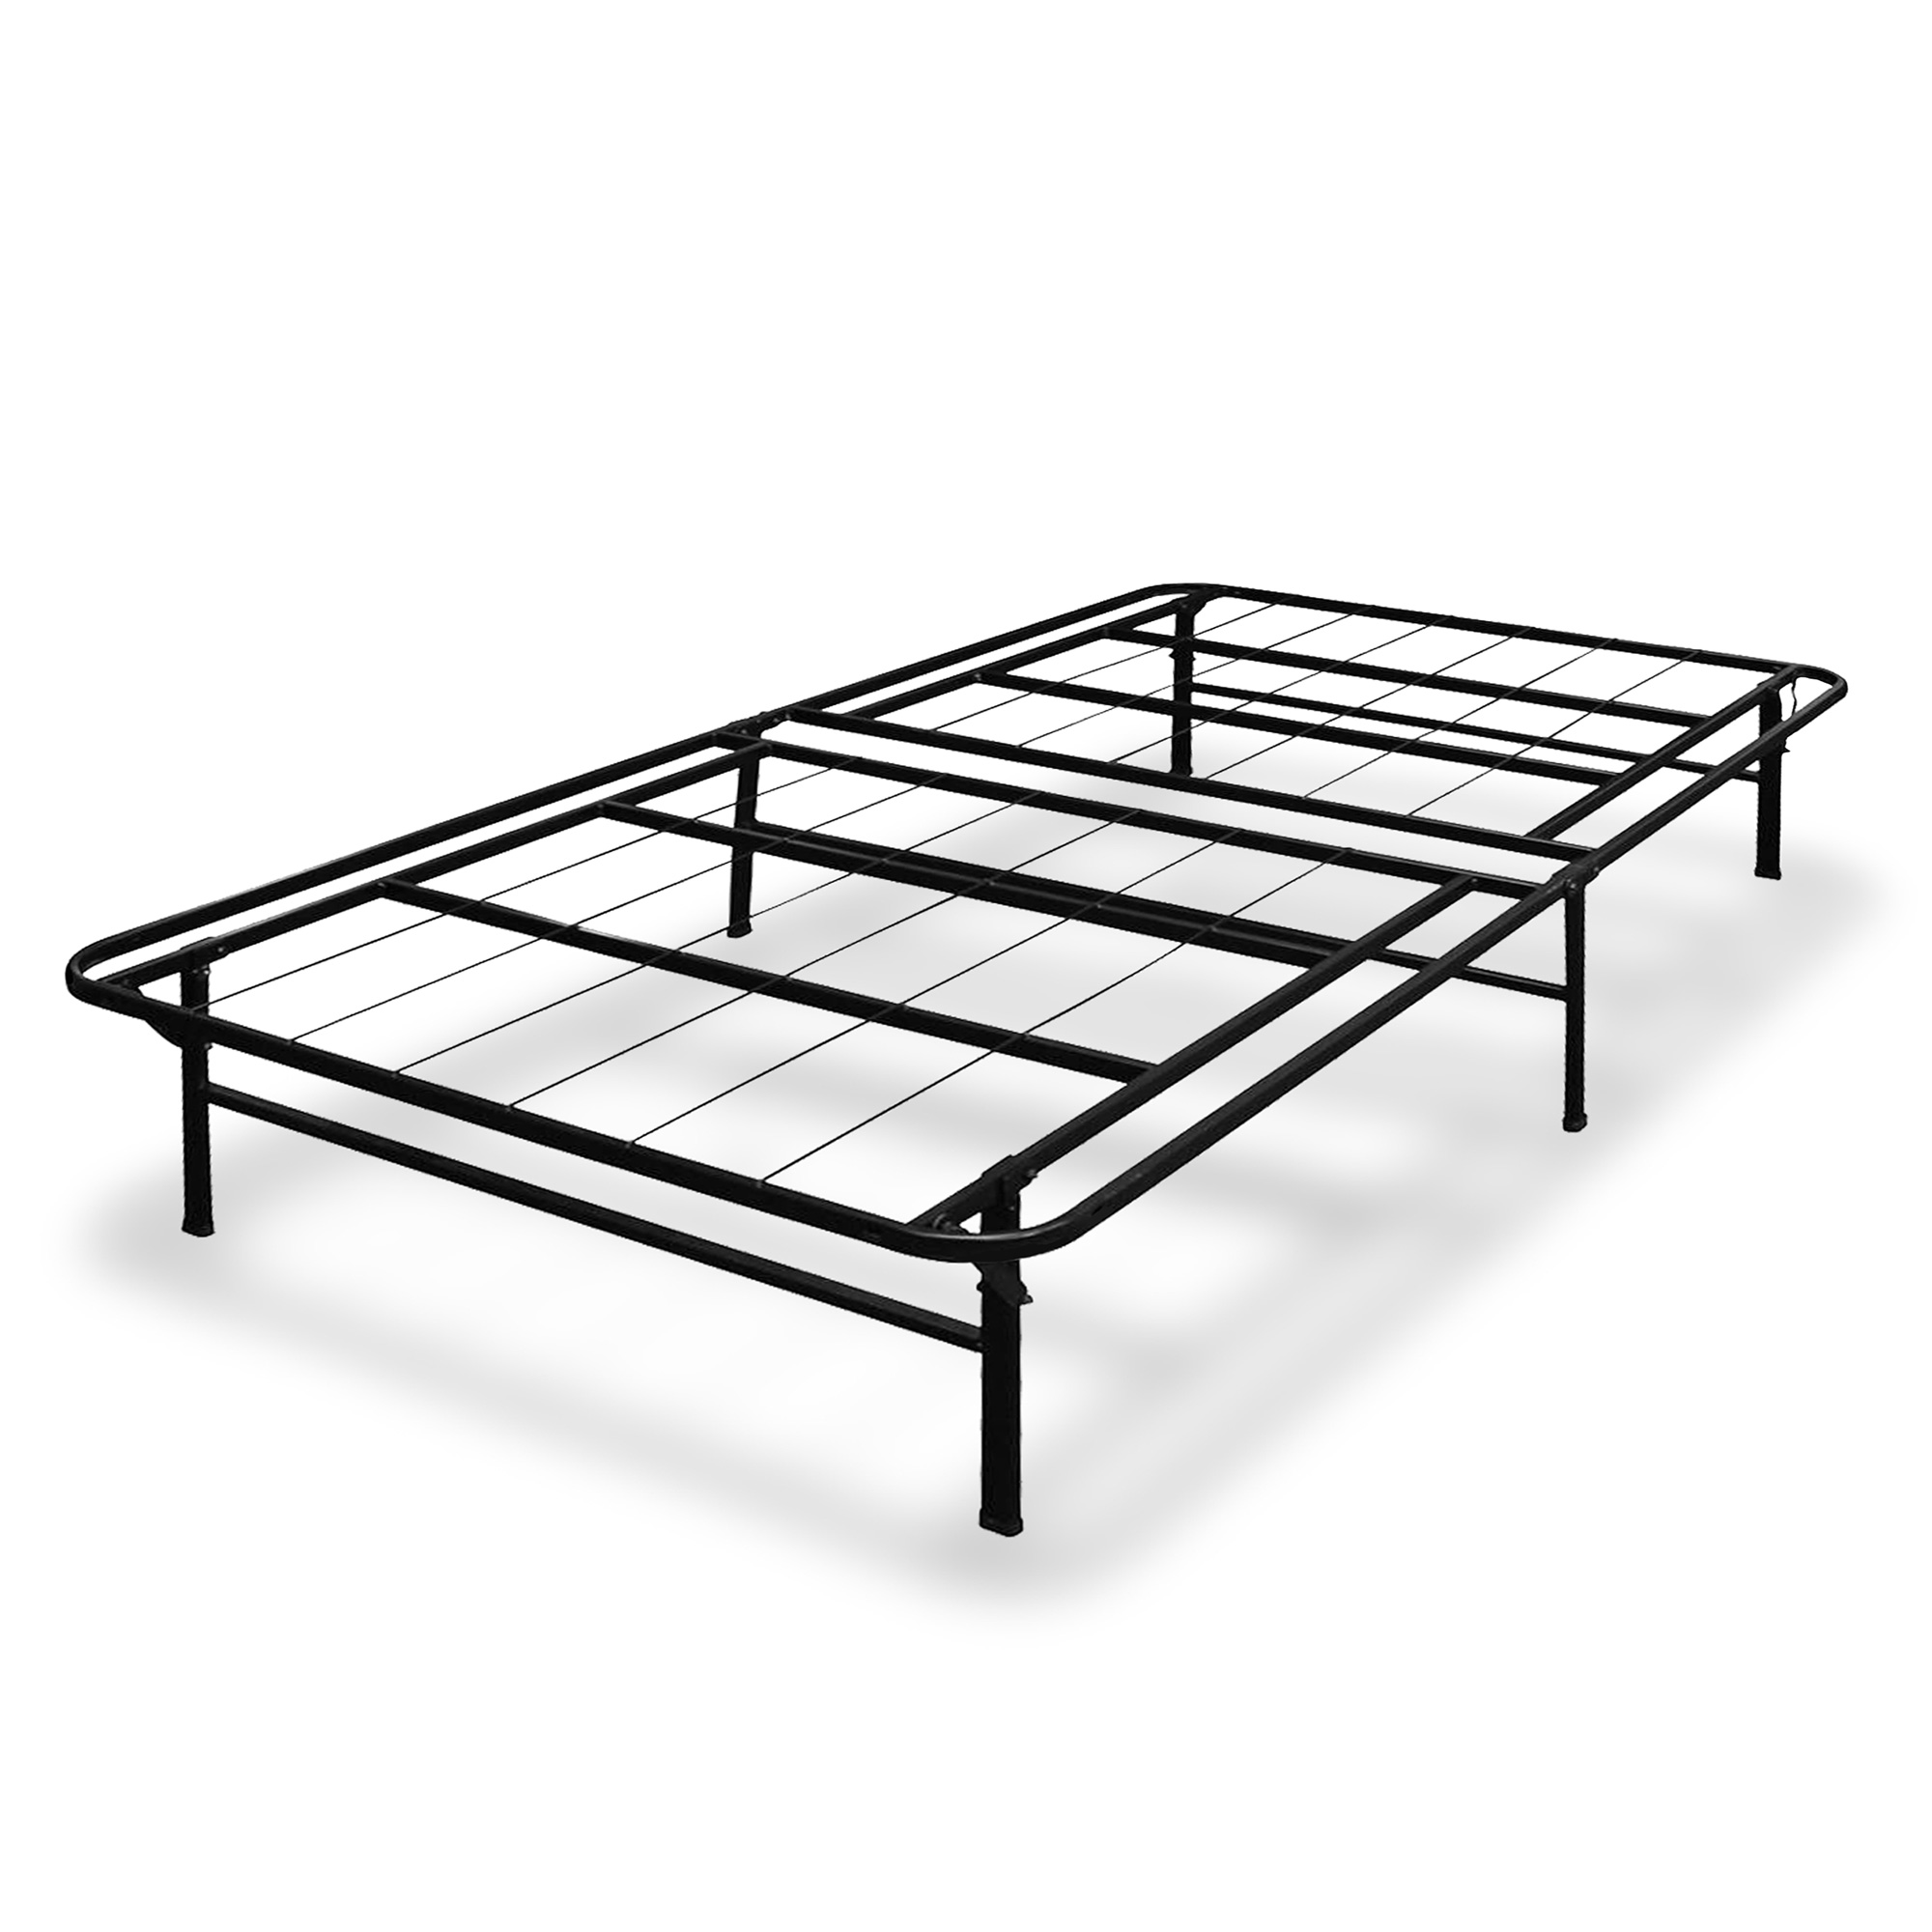 Mattress Platform Best Price Mattress New Innovated Premium Steel Platform Bed Frame Multiple Sizes